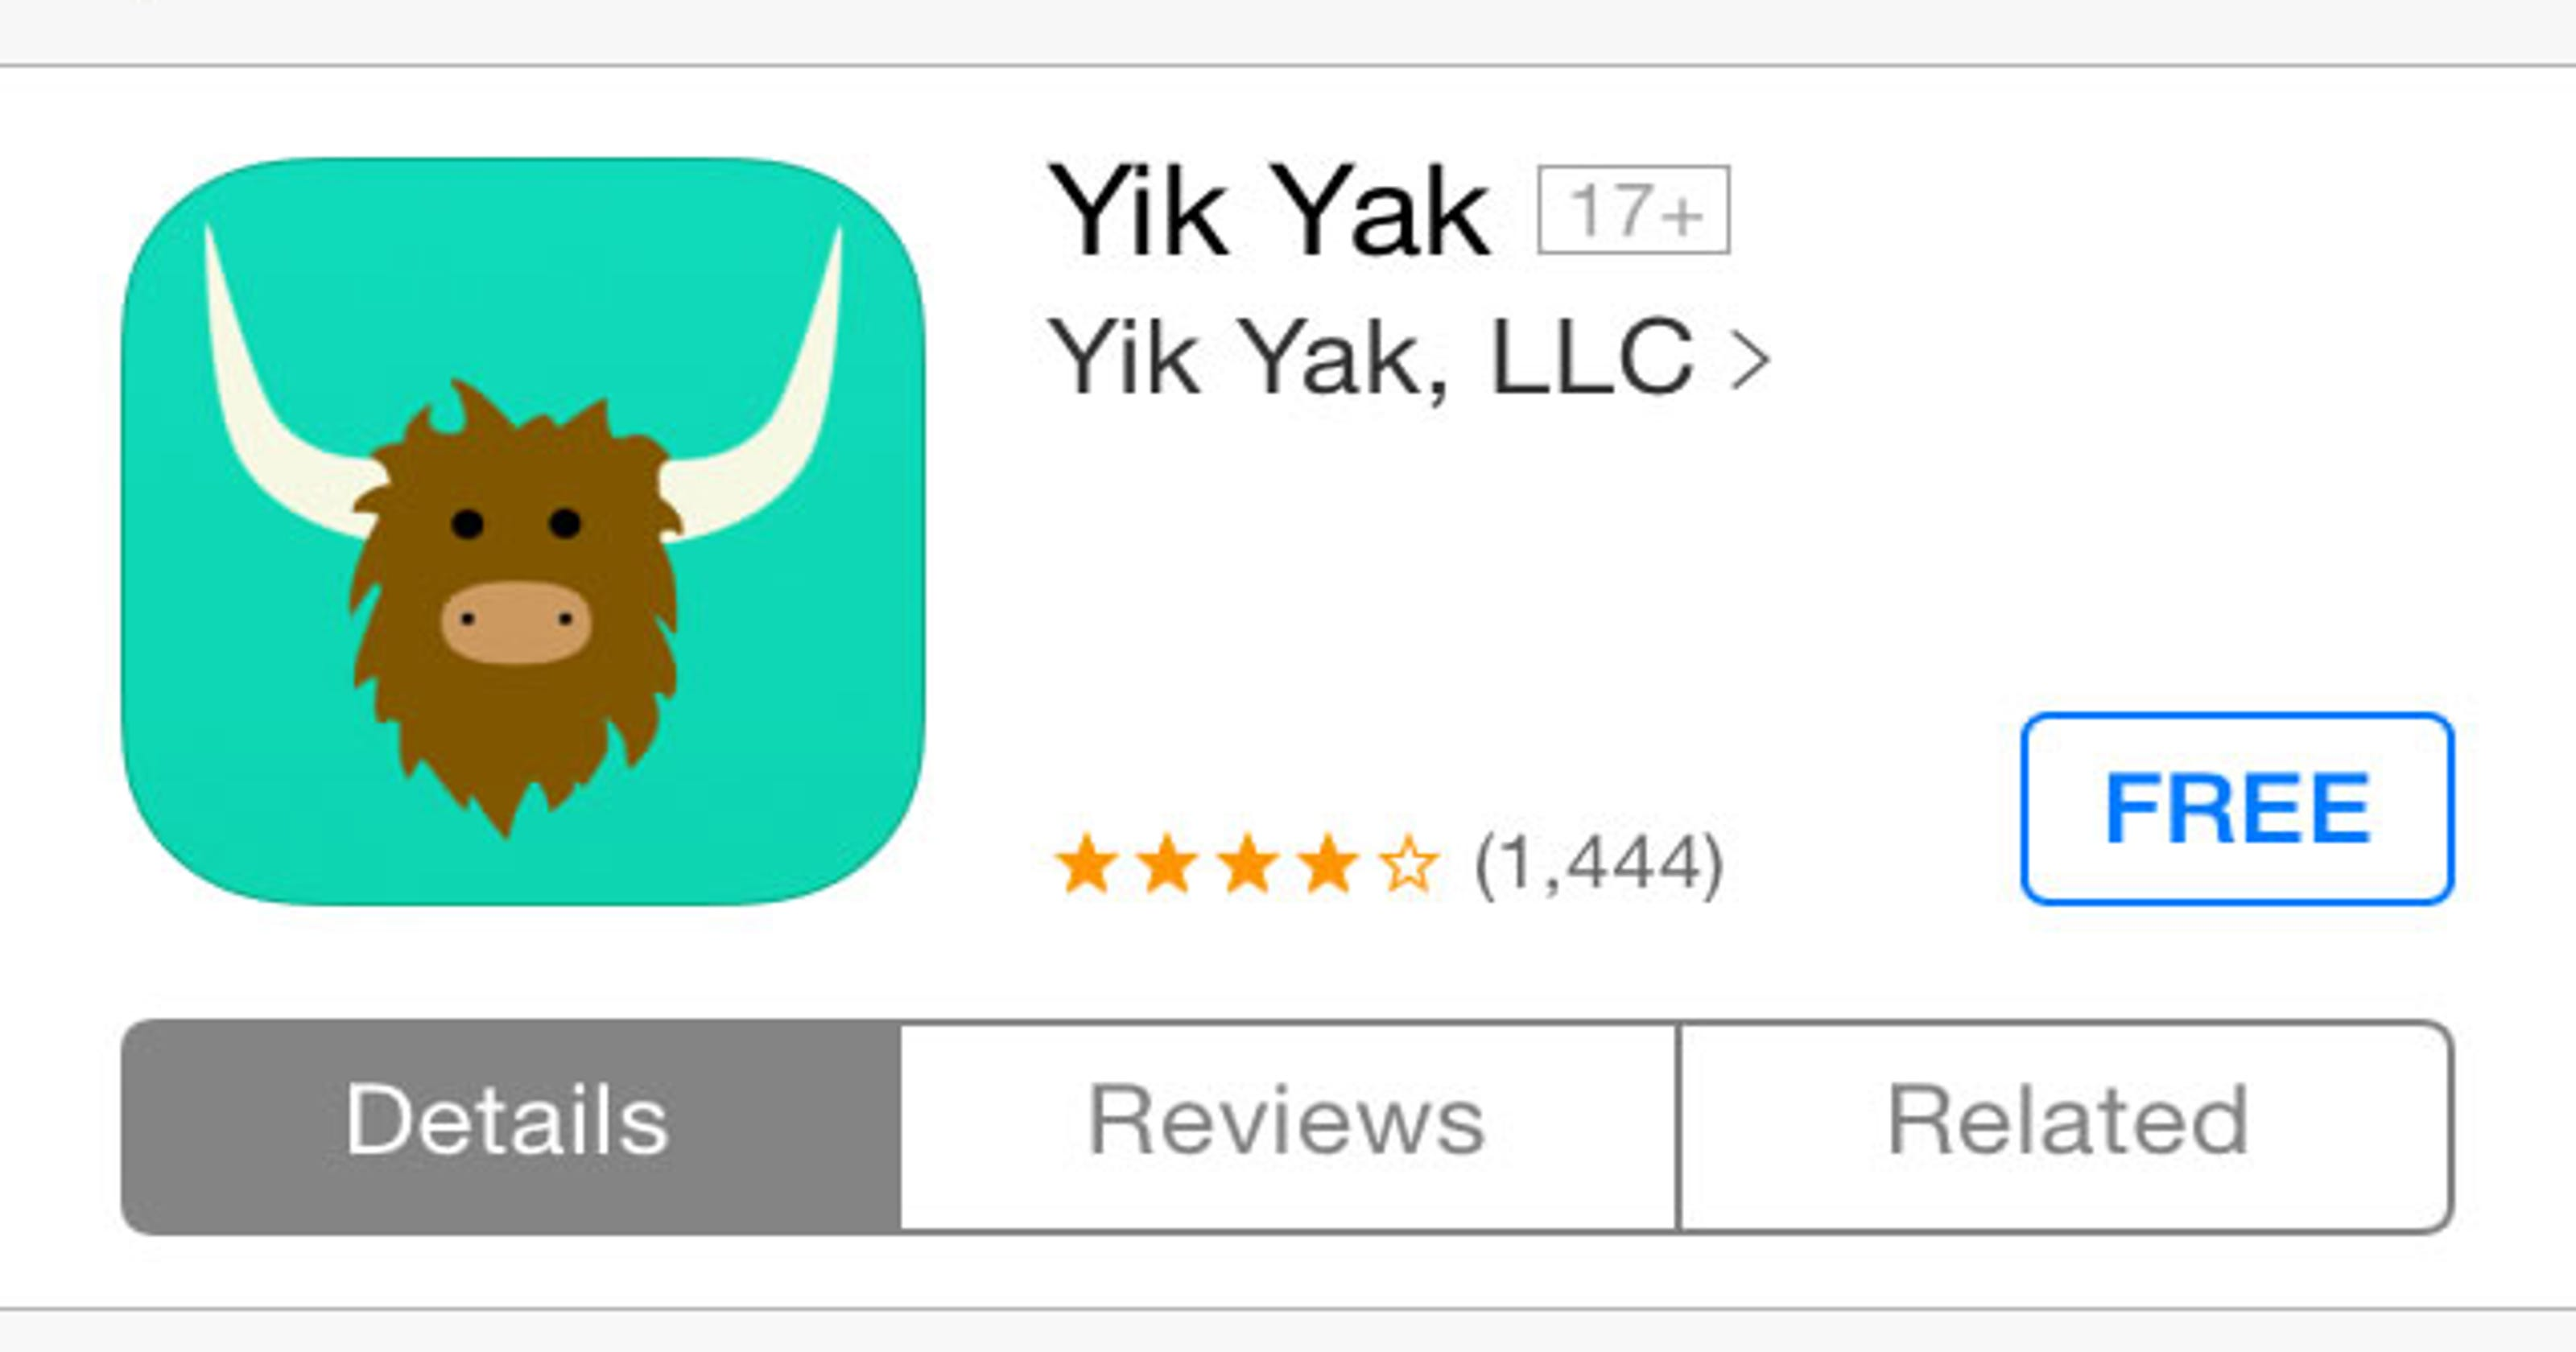 N Y  college seeks identities of Yik Yak users